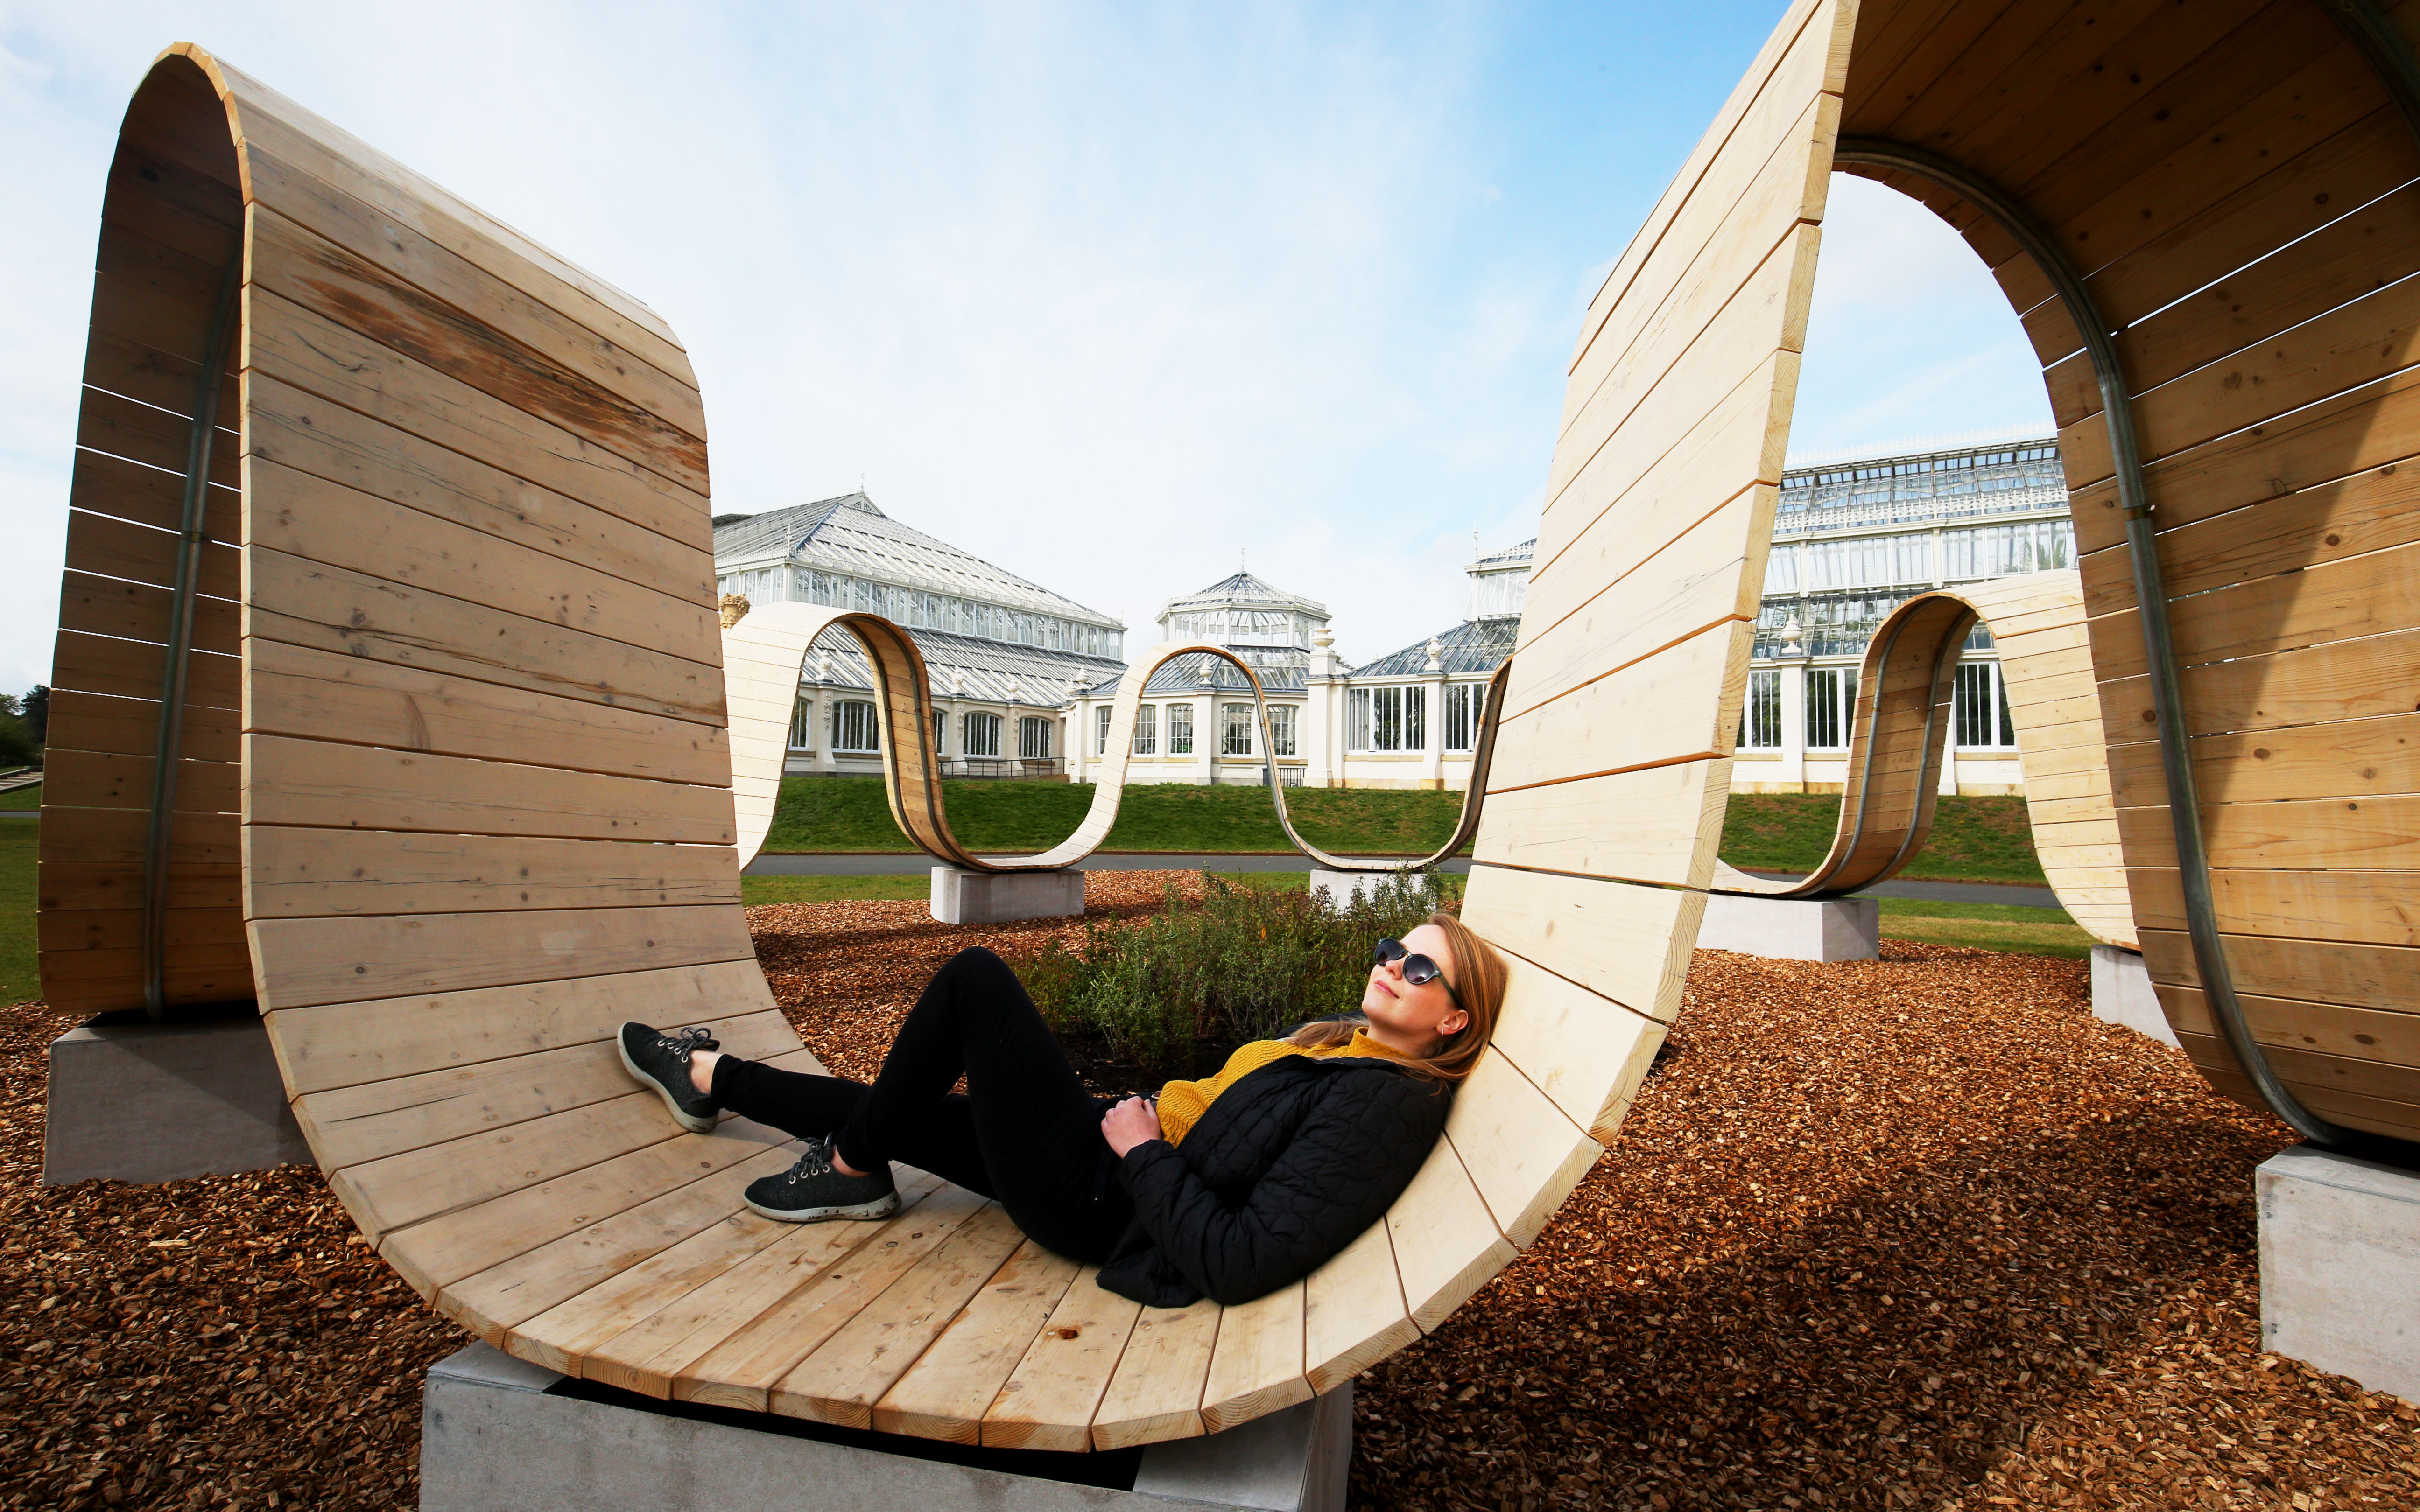 <p>Visitor programme manager Kate Solecki rests on a portion of the Paul Cocksedge 2019 London Design Festival piece 'Please Be Seated' at the new visitor attraction Secret World of Plants at Kew Gardens, London, which runs from May 1st to September 19th, 2021. Picture date: Thursday May 6, 2021.</p>